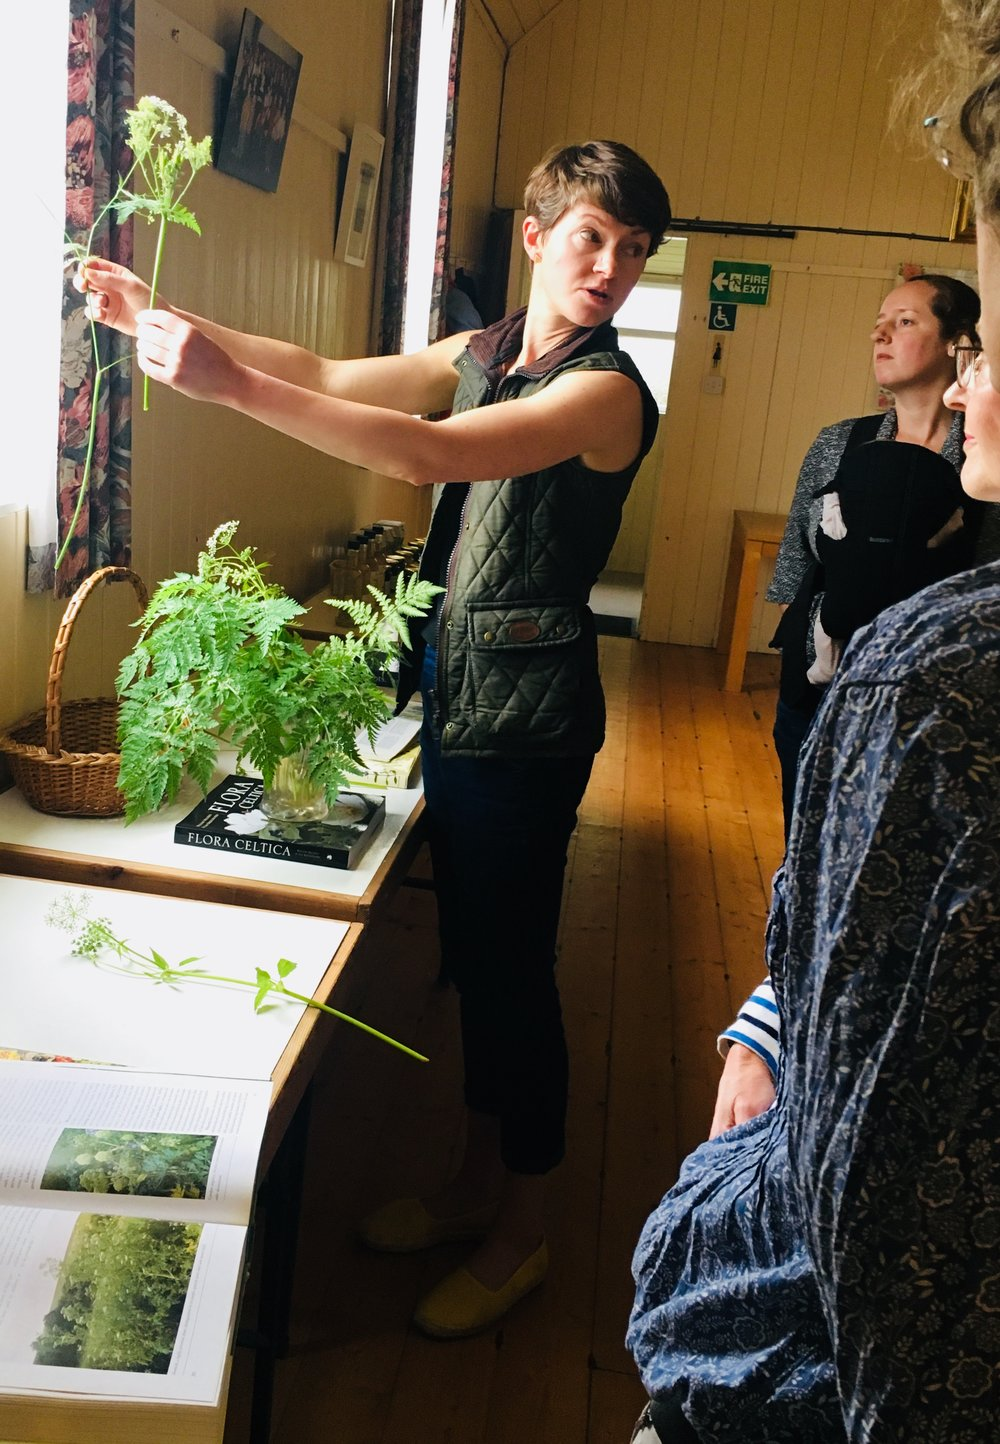 Me demonstrating basic plant identification skills at How and Why to Eat the Wild, Scottish Borders - June 2018